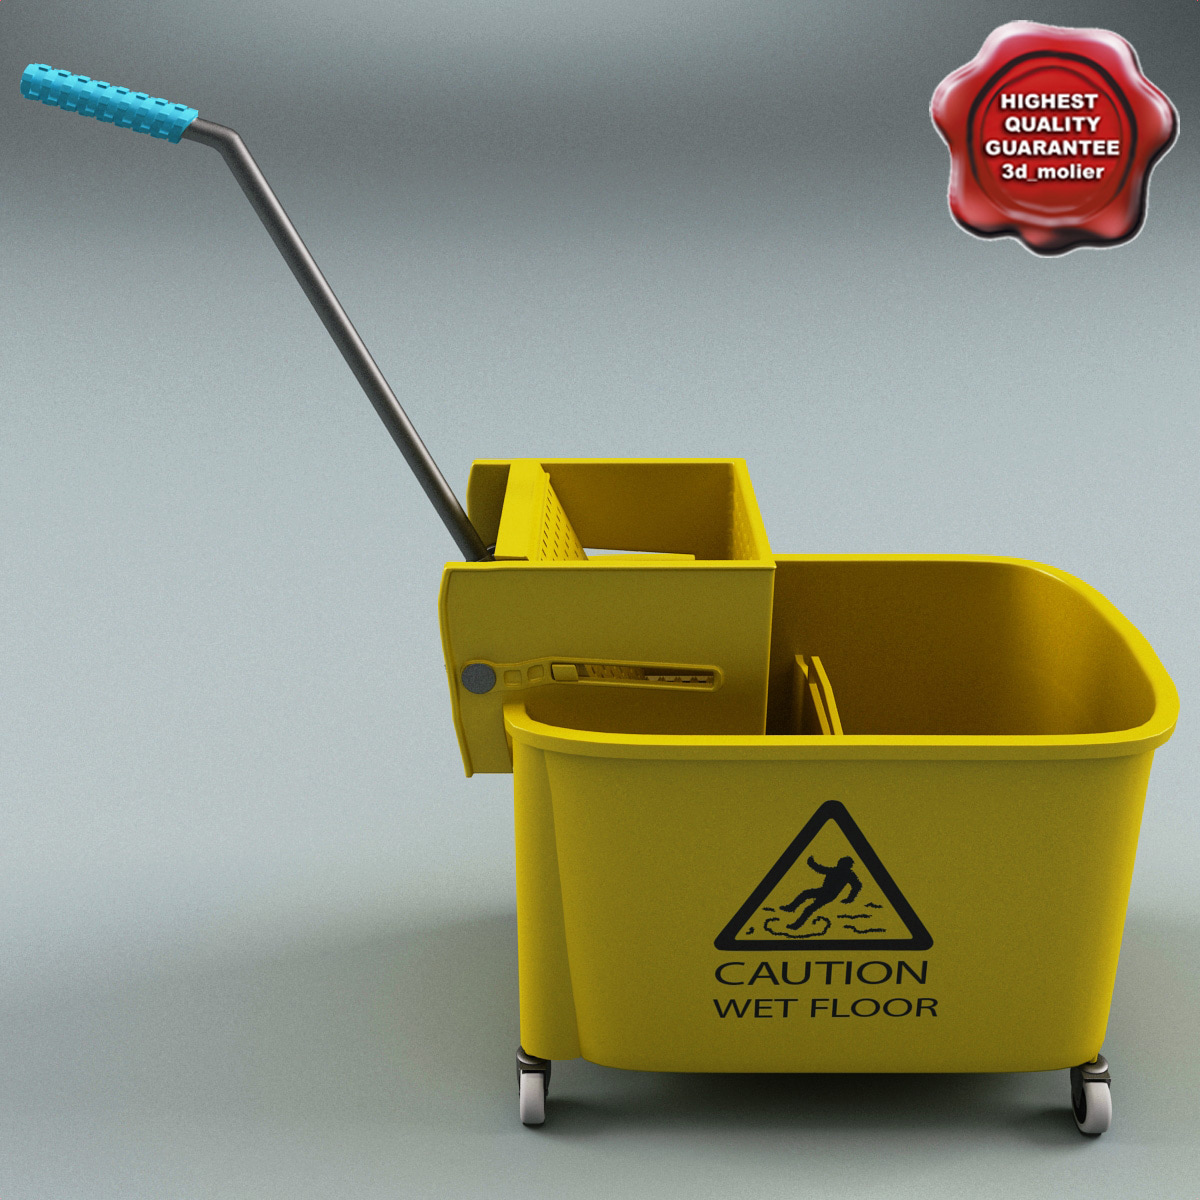 3d model of mop wringer